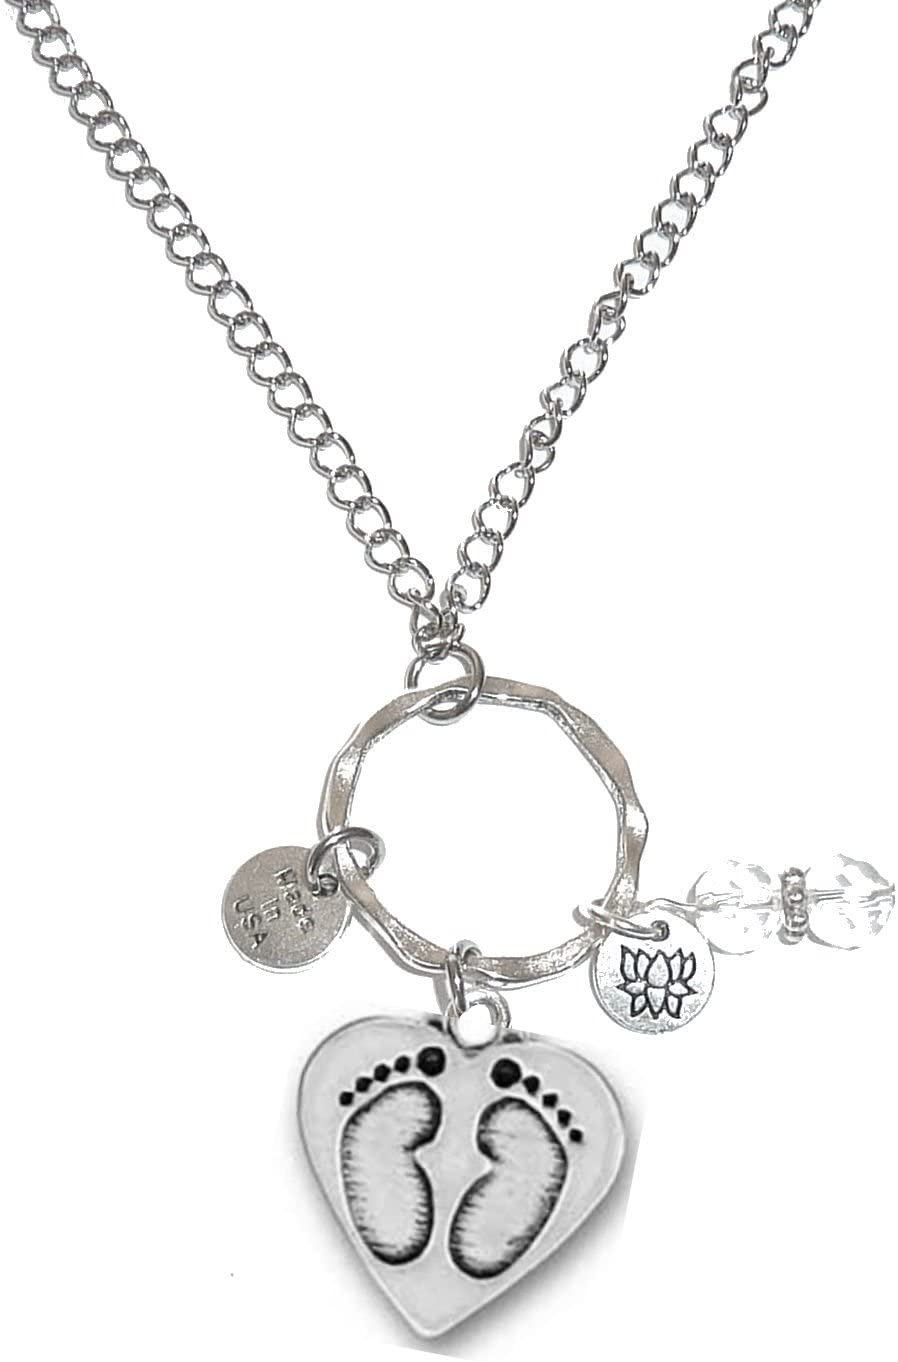 Hidden Hollow Beads Rear View Mirror Car Charm Ornament, Sun Catcher, Hanging Pendent, Stainless Steel Chain (Baby Feet)